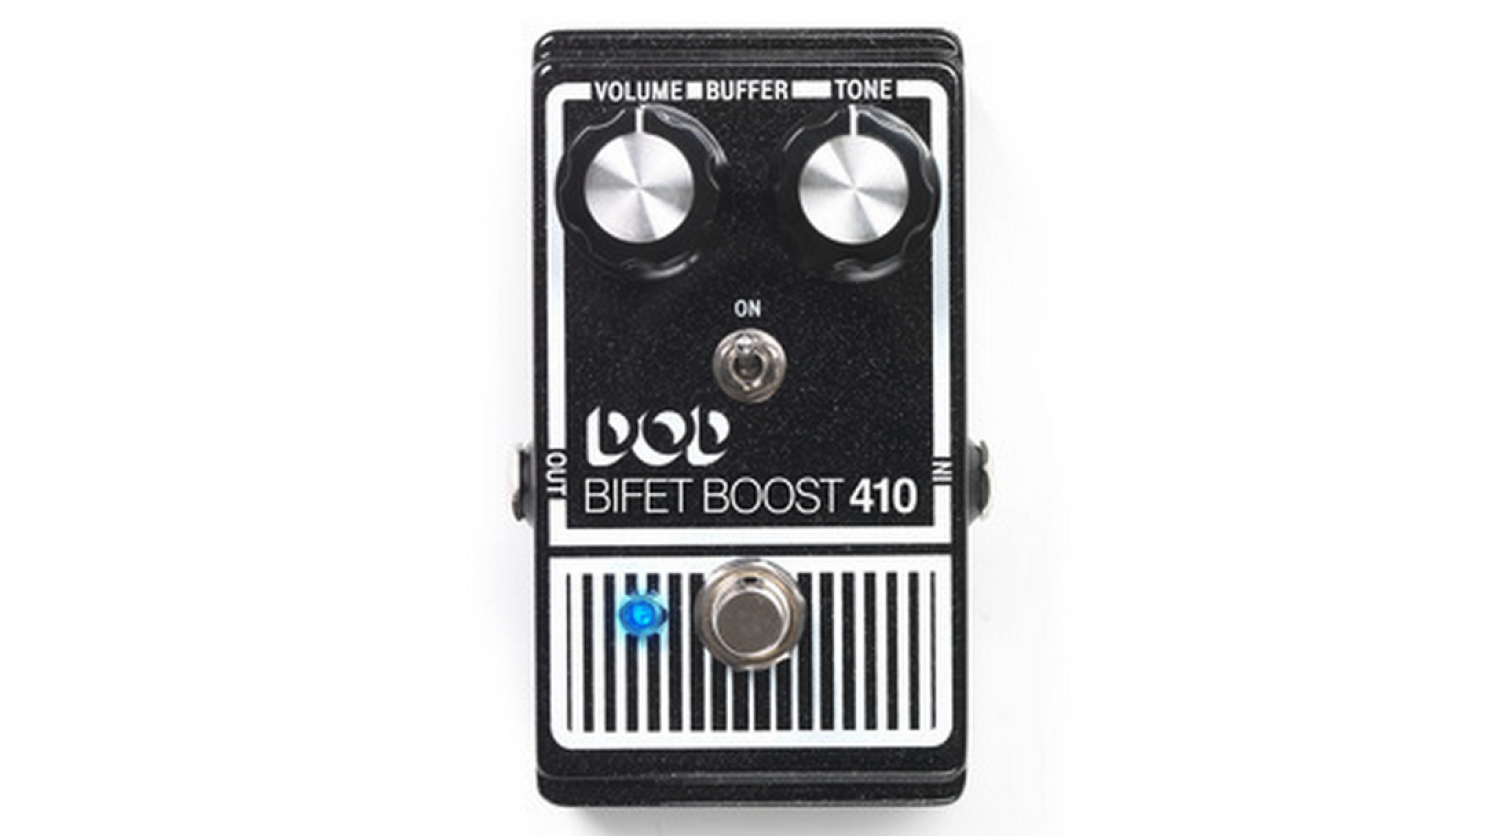 DOD announces Bifet Boost 410 reissue